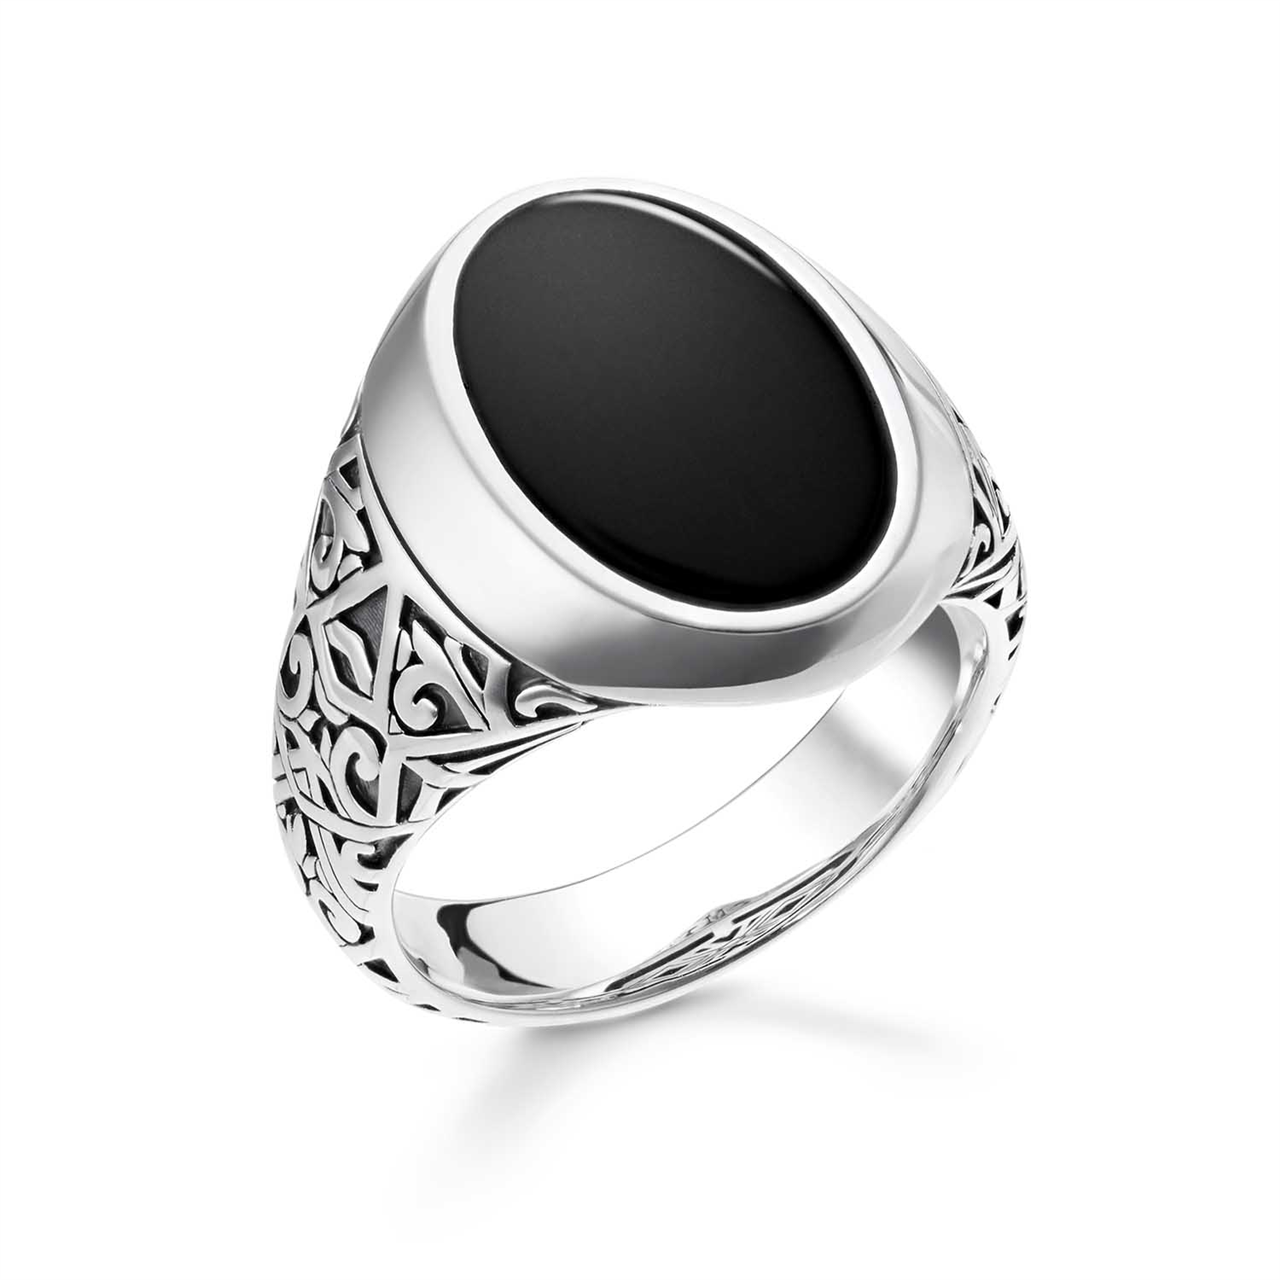 Thomas Sabo Gents Onyx Signet Ring